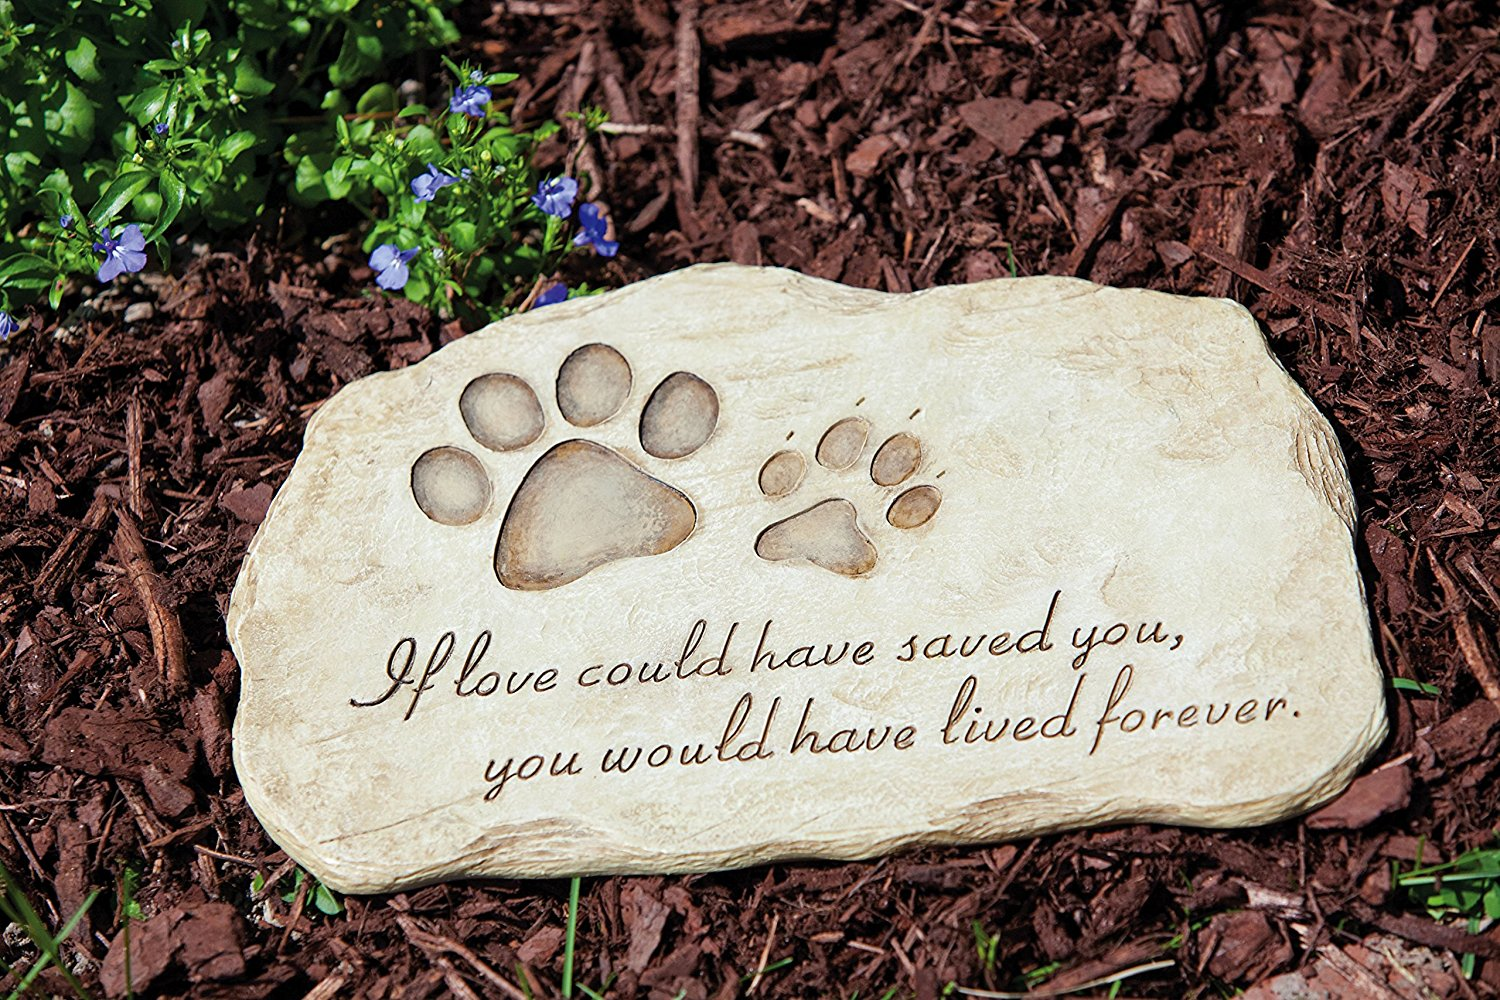 Pet urns memorial ideas pet memorial stones pet memorials pet memorial - Pet Memorial Stone If Loved Could Have Saved You You Would Have Lived Forever